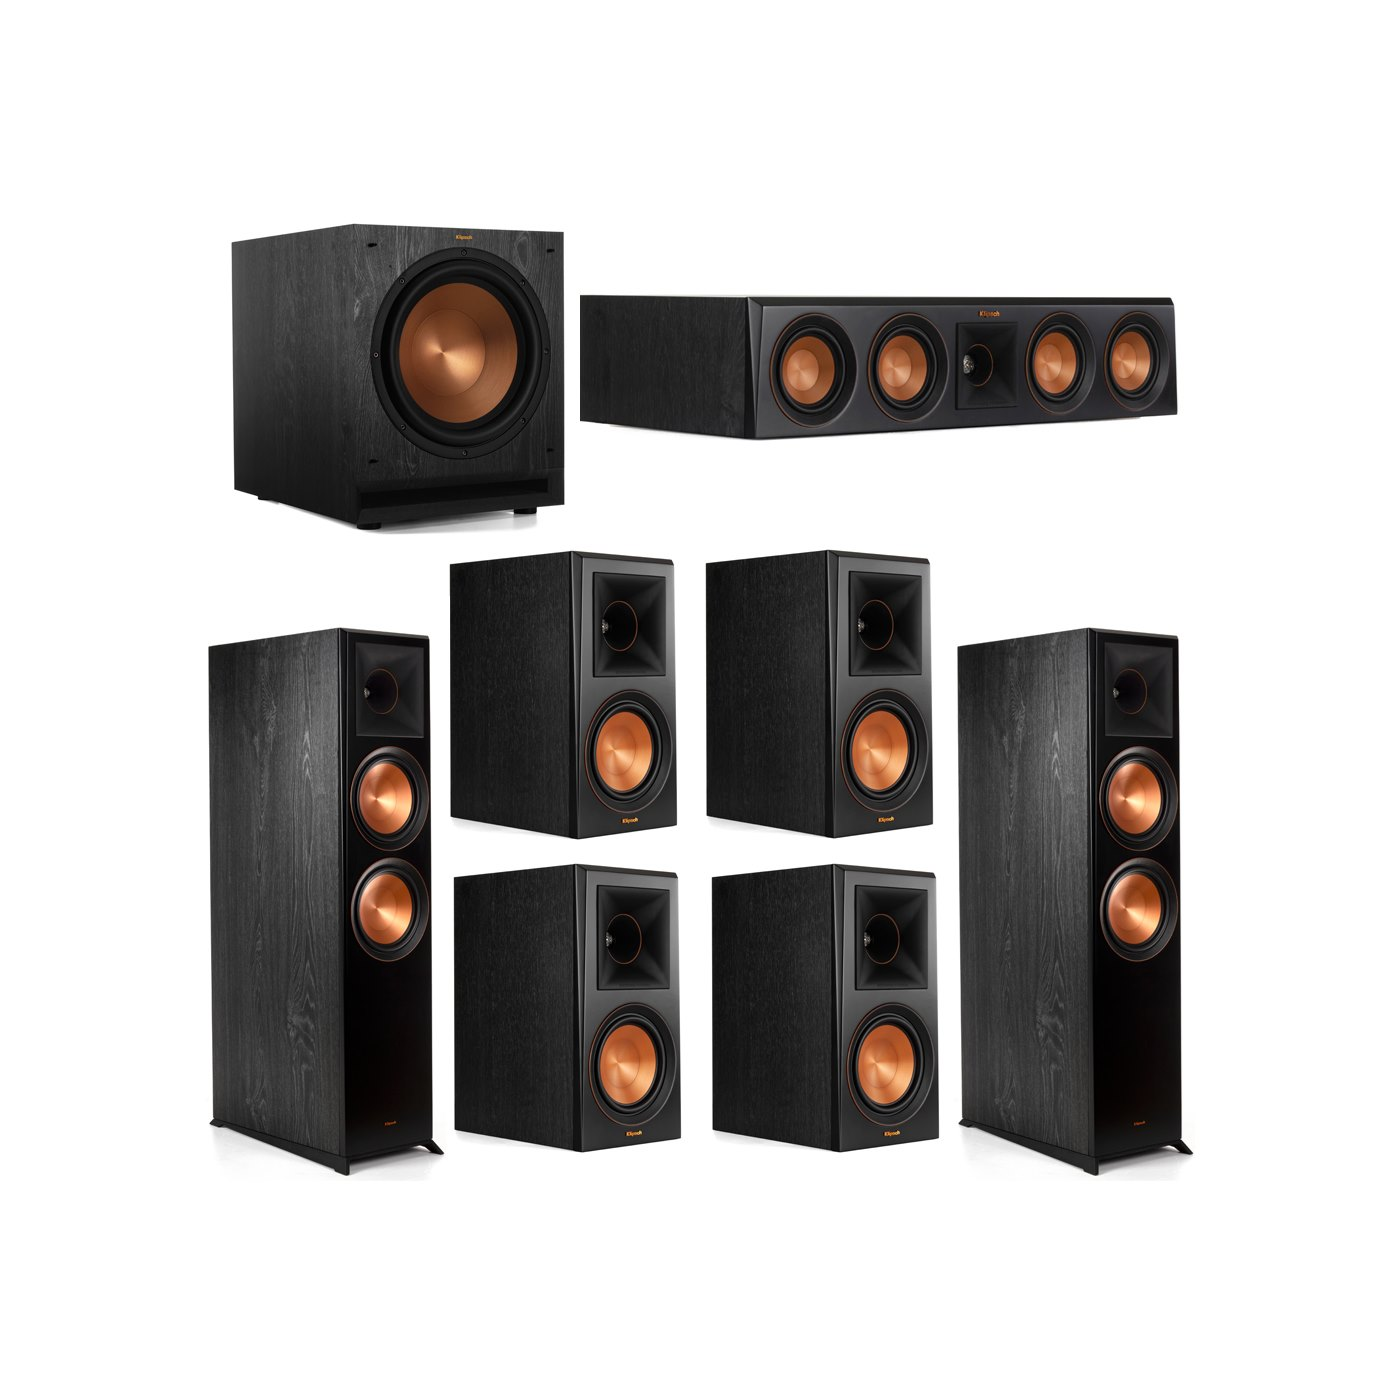 Klipsch 7.1 System with 2 RP-8000F Floorstanding Speakers, 1 Klipsch RP-404C Center Speaker, 4 Klipsch RP-600M Surround Speakers, 1 Klipsch SPL-120 Subwoofer